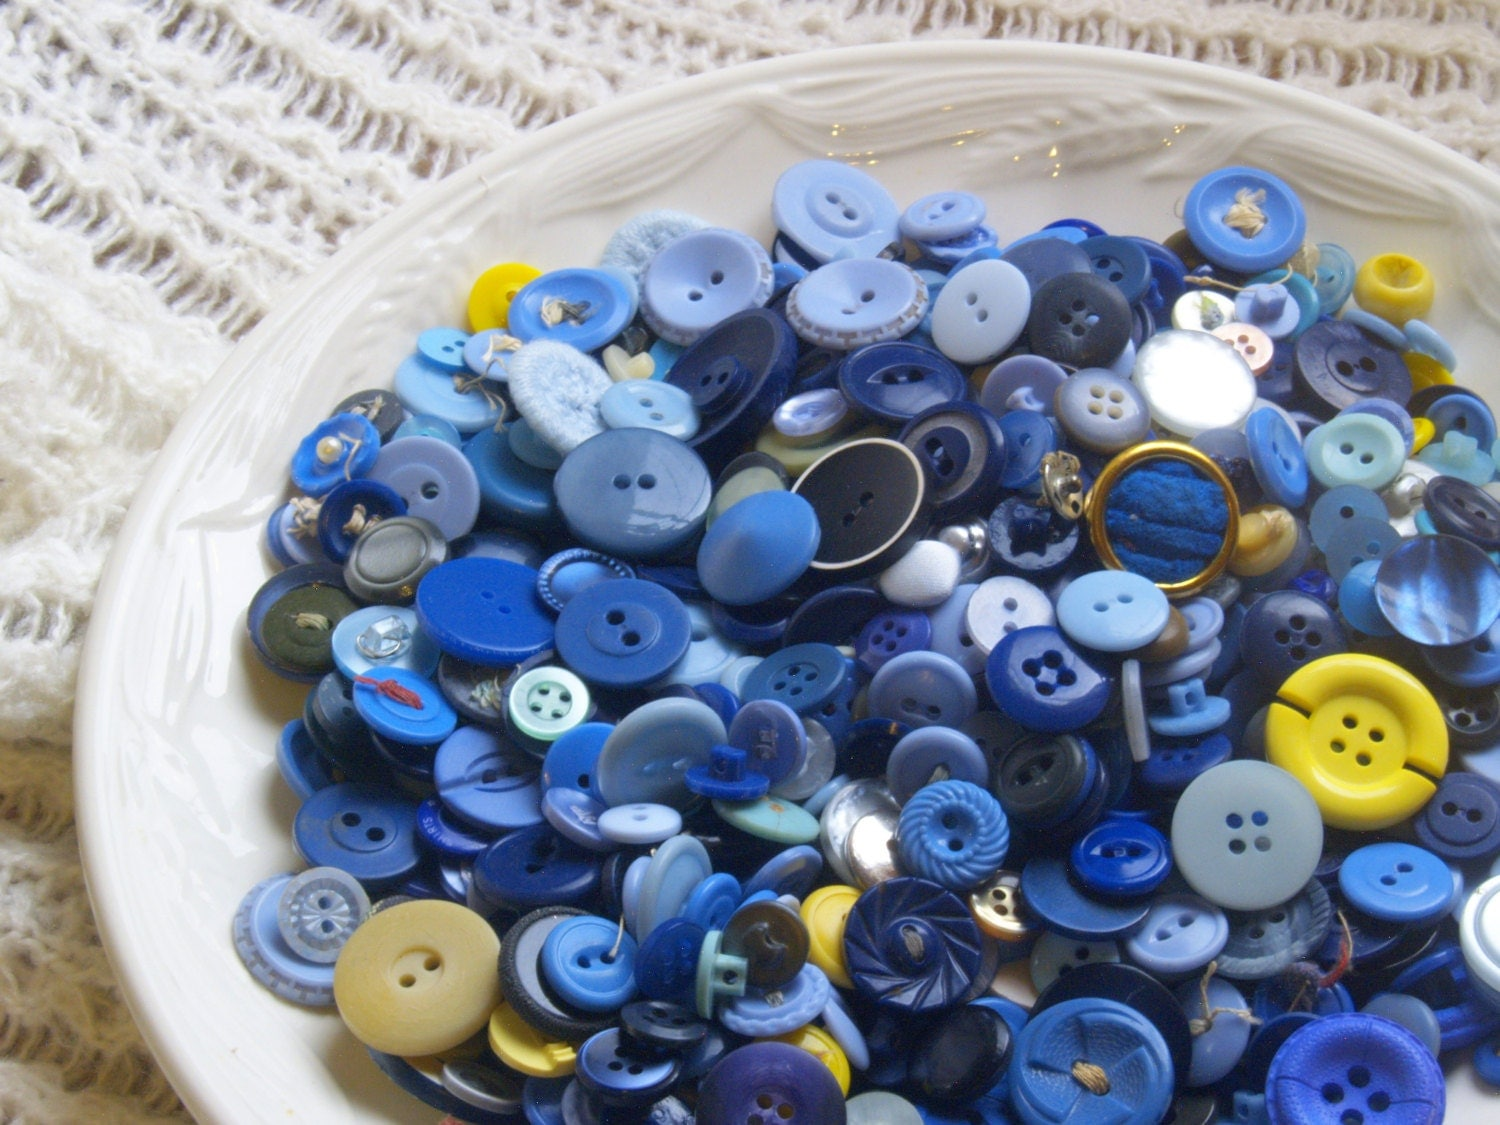 Blue buttons lot bulk supplies vintage and new kids crafts for Craft kits for kids in bulk